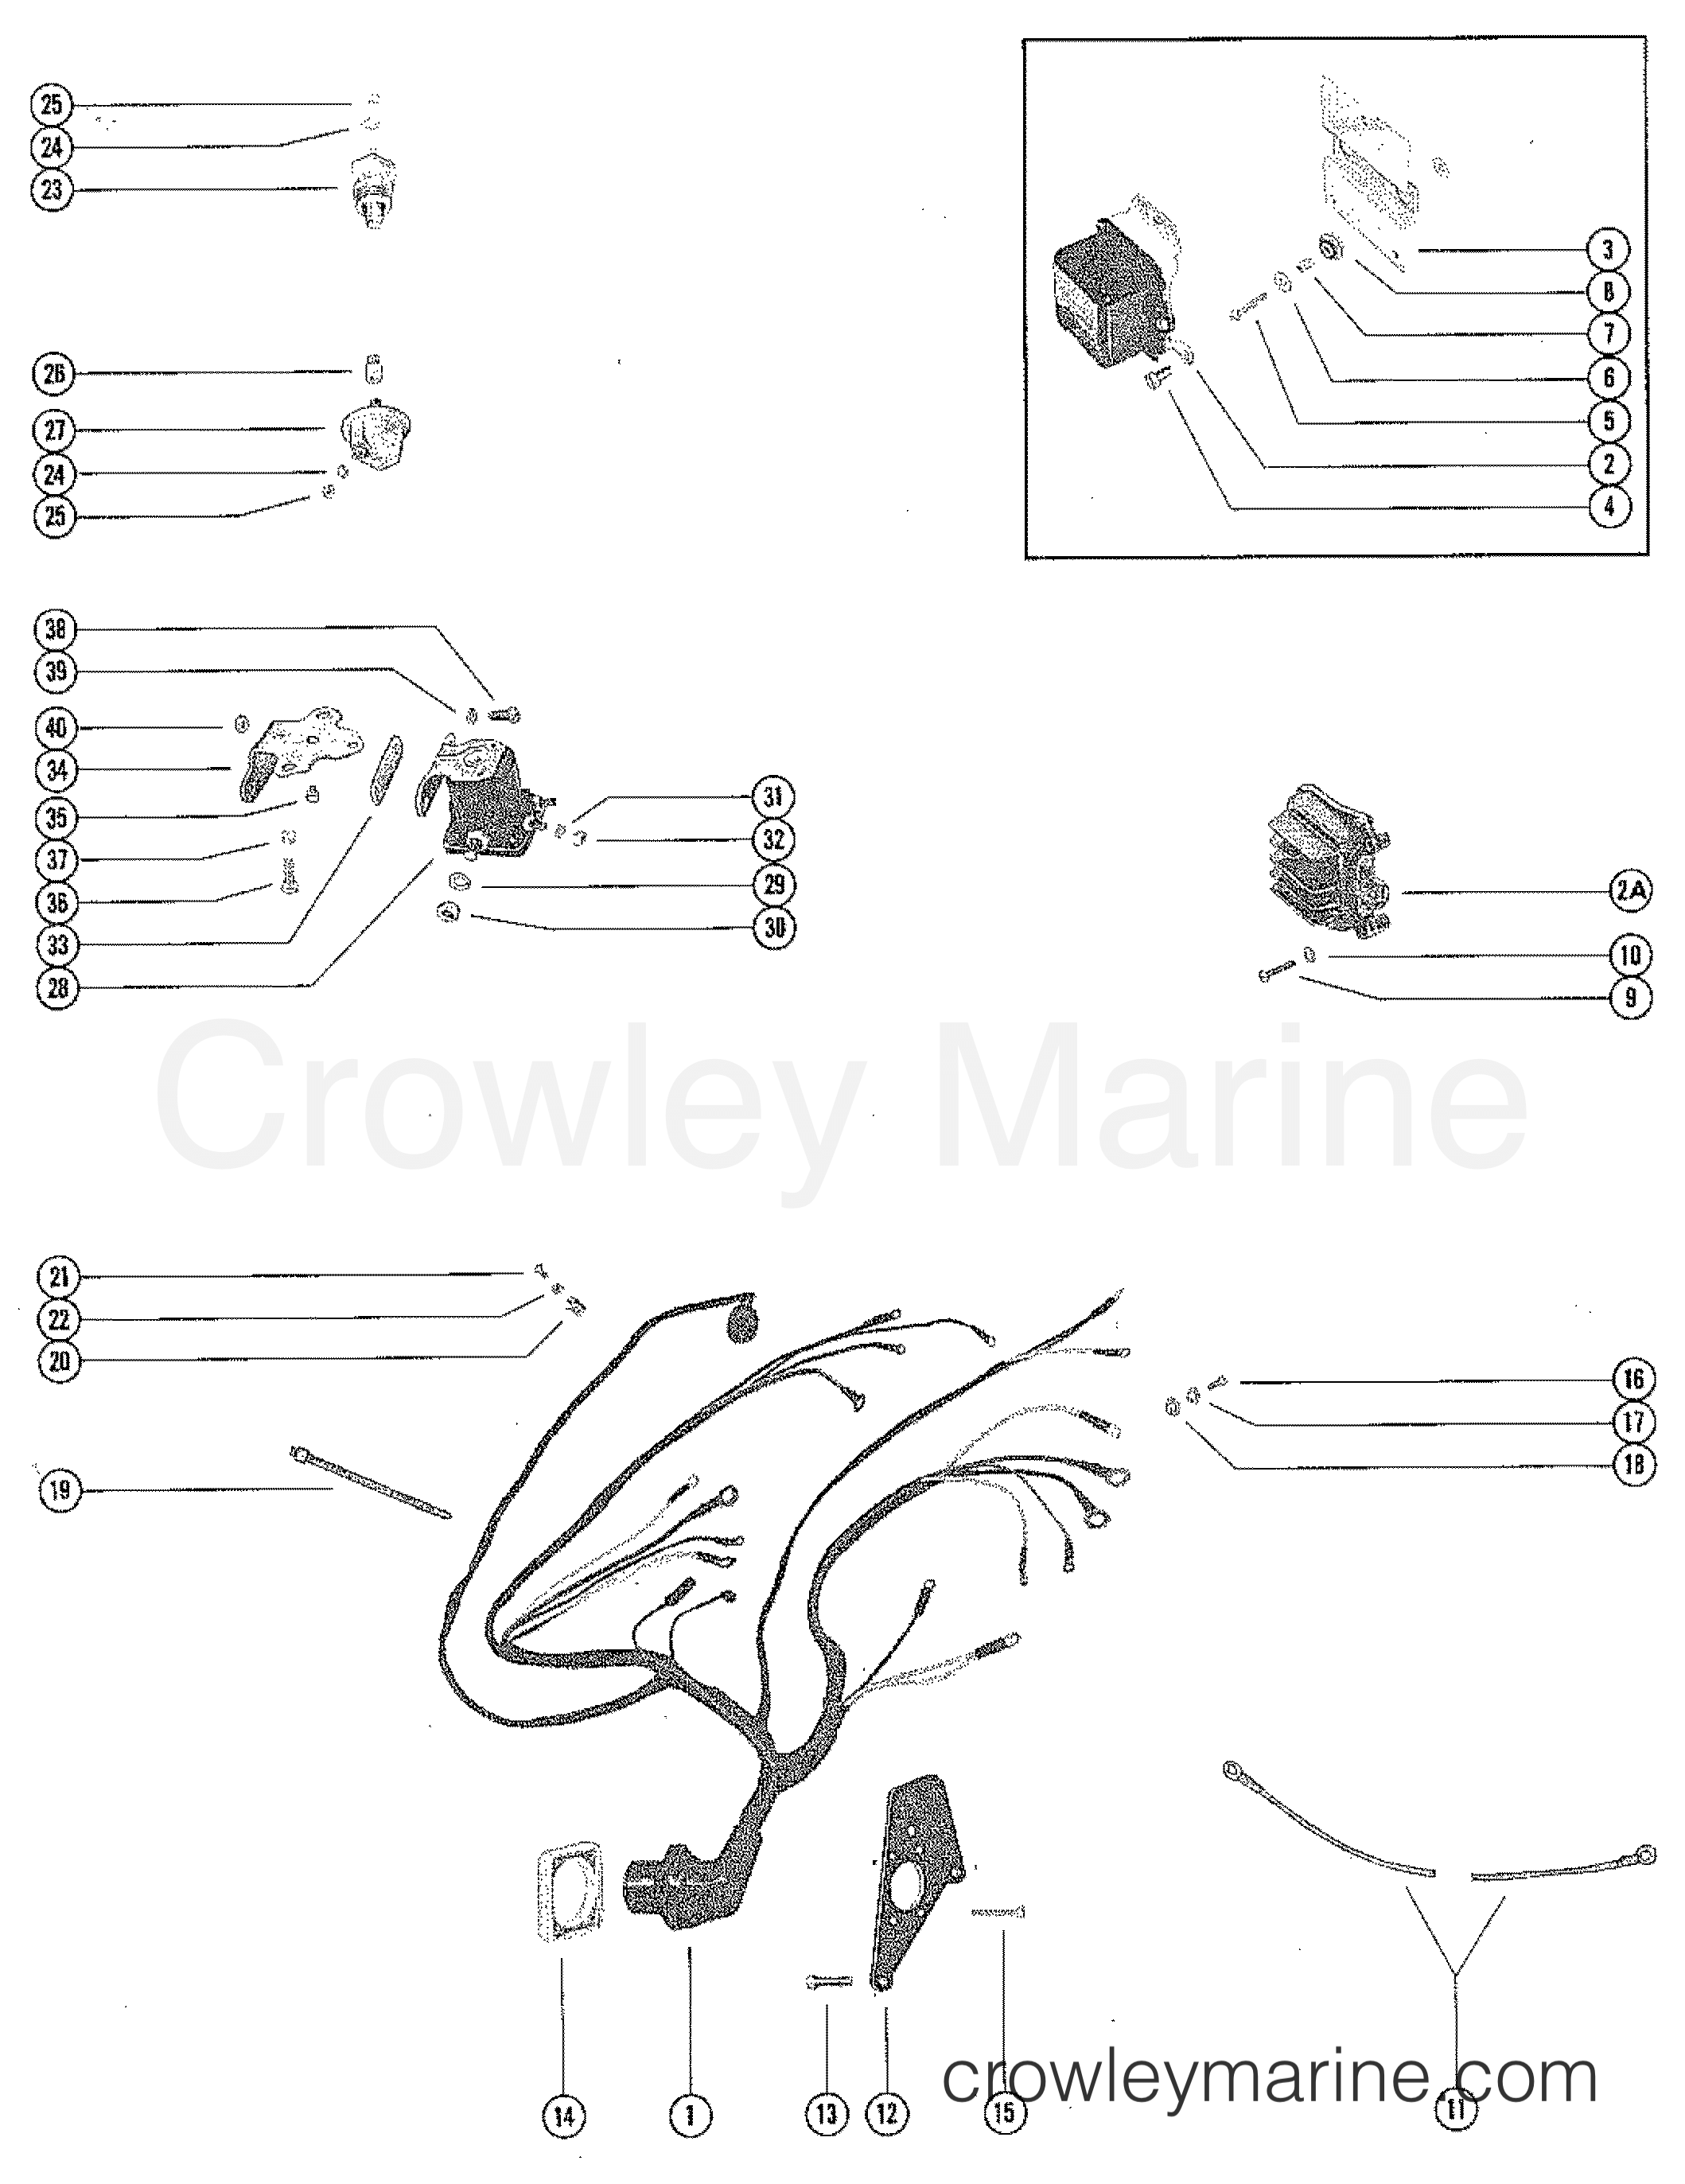 120 Mercruiser Ignition Wiring Diagram 68 Corvette Wiring Diagram Free Download Schematic Begeboy Wiring Diagram Source